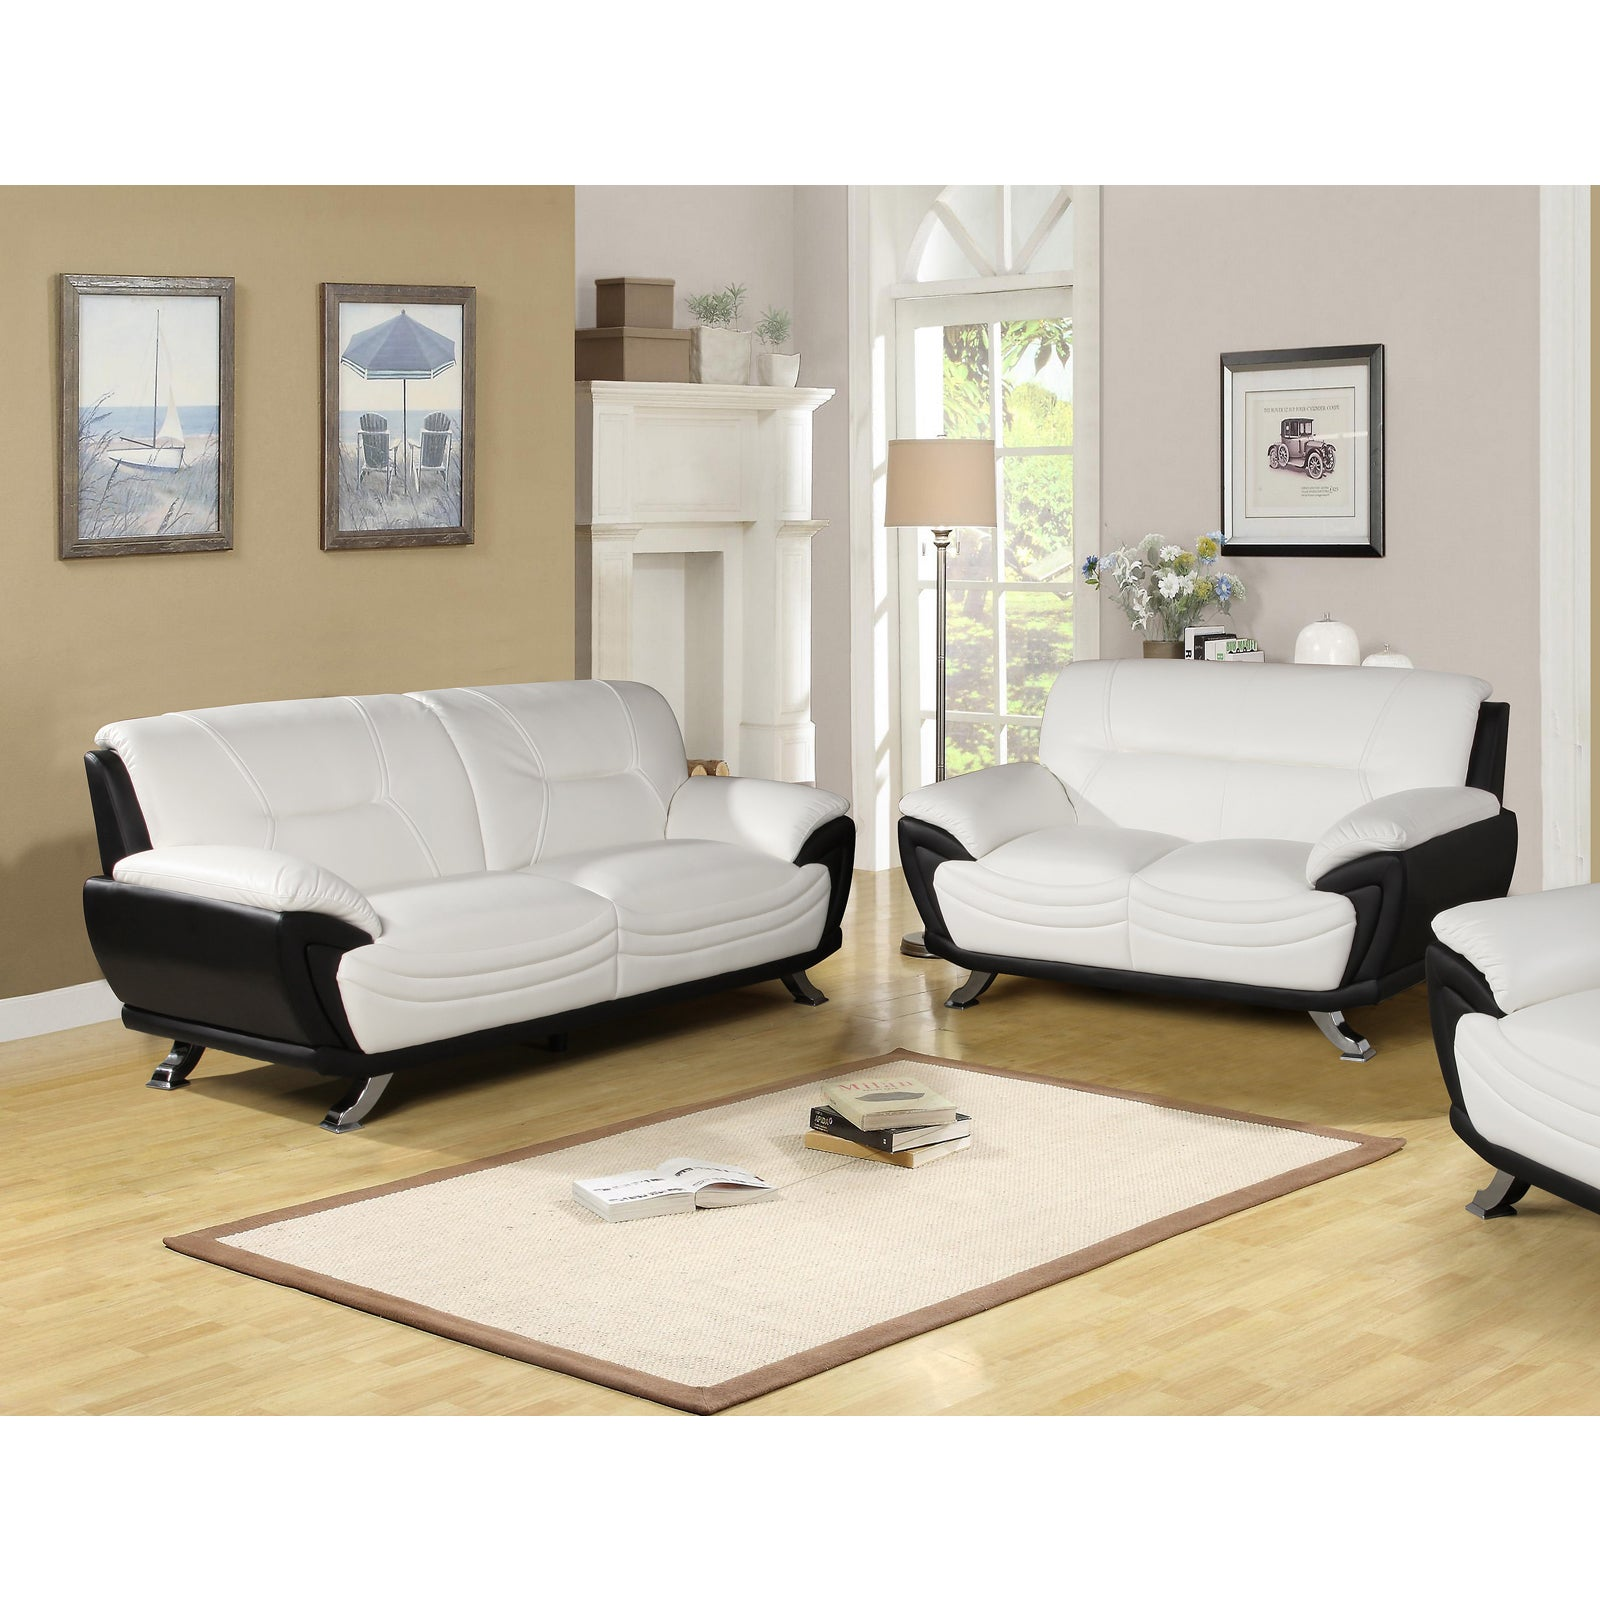 Shop alicia white black two tone modern sofa and loveseat set free shipping today overstock 6775111